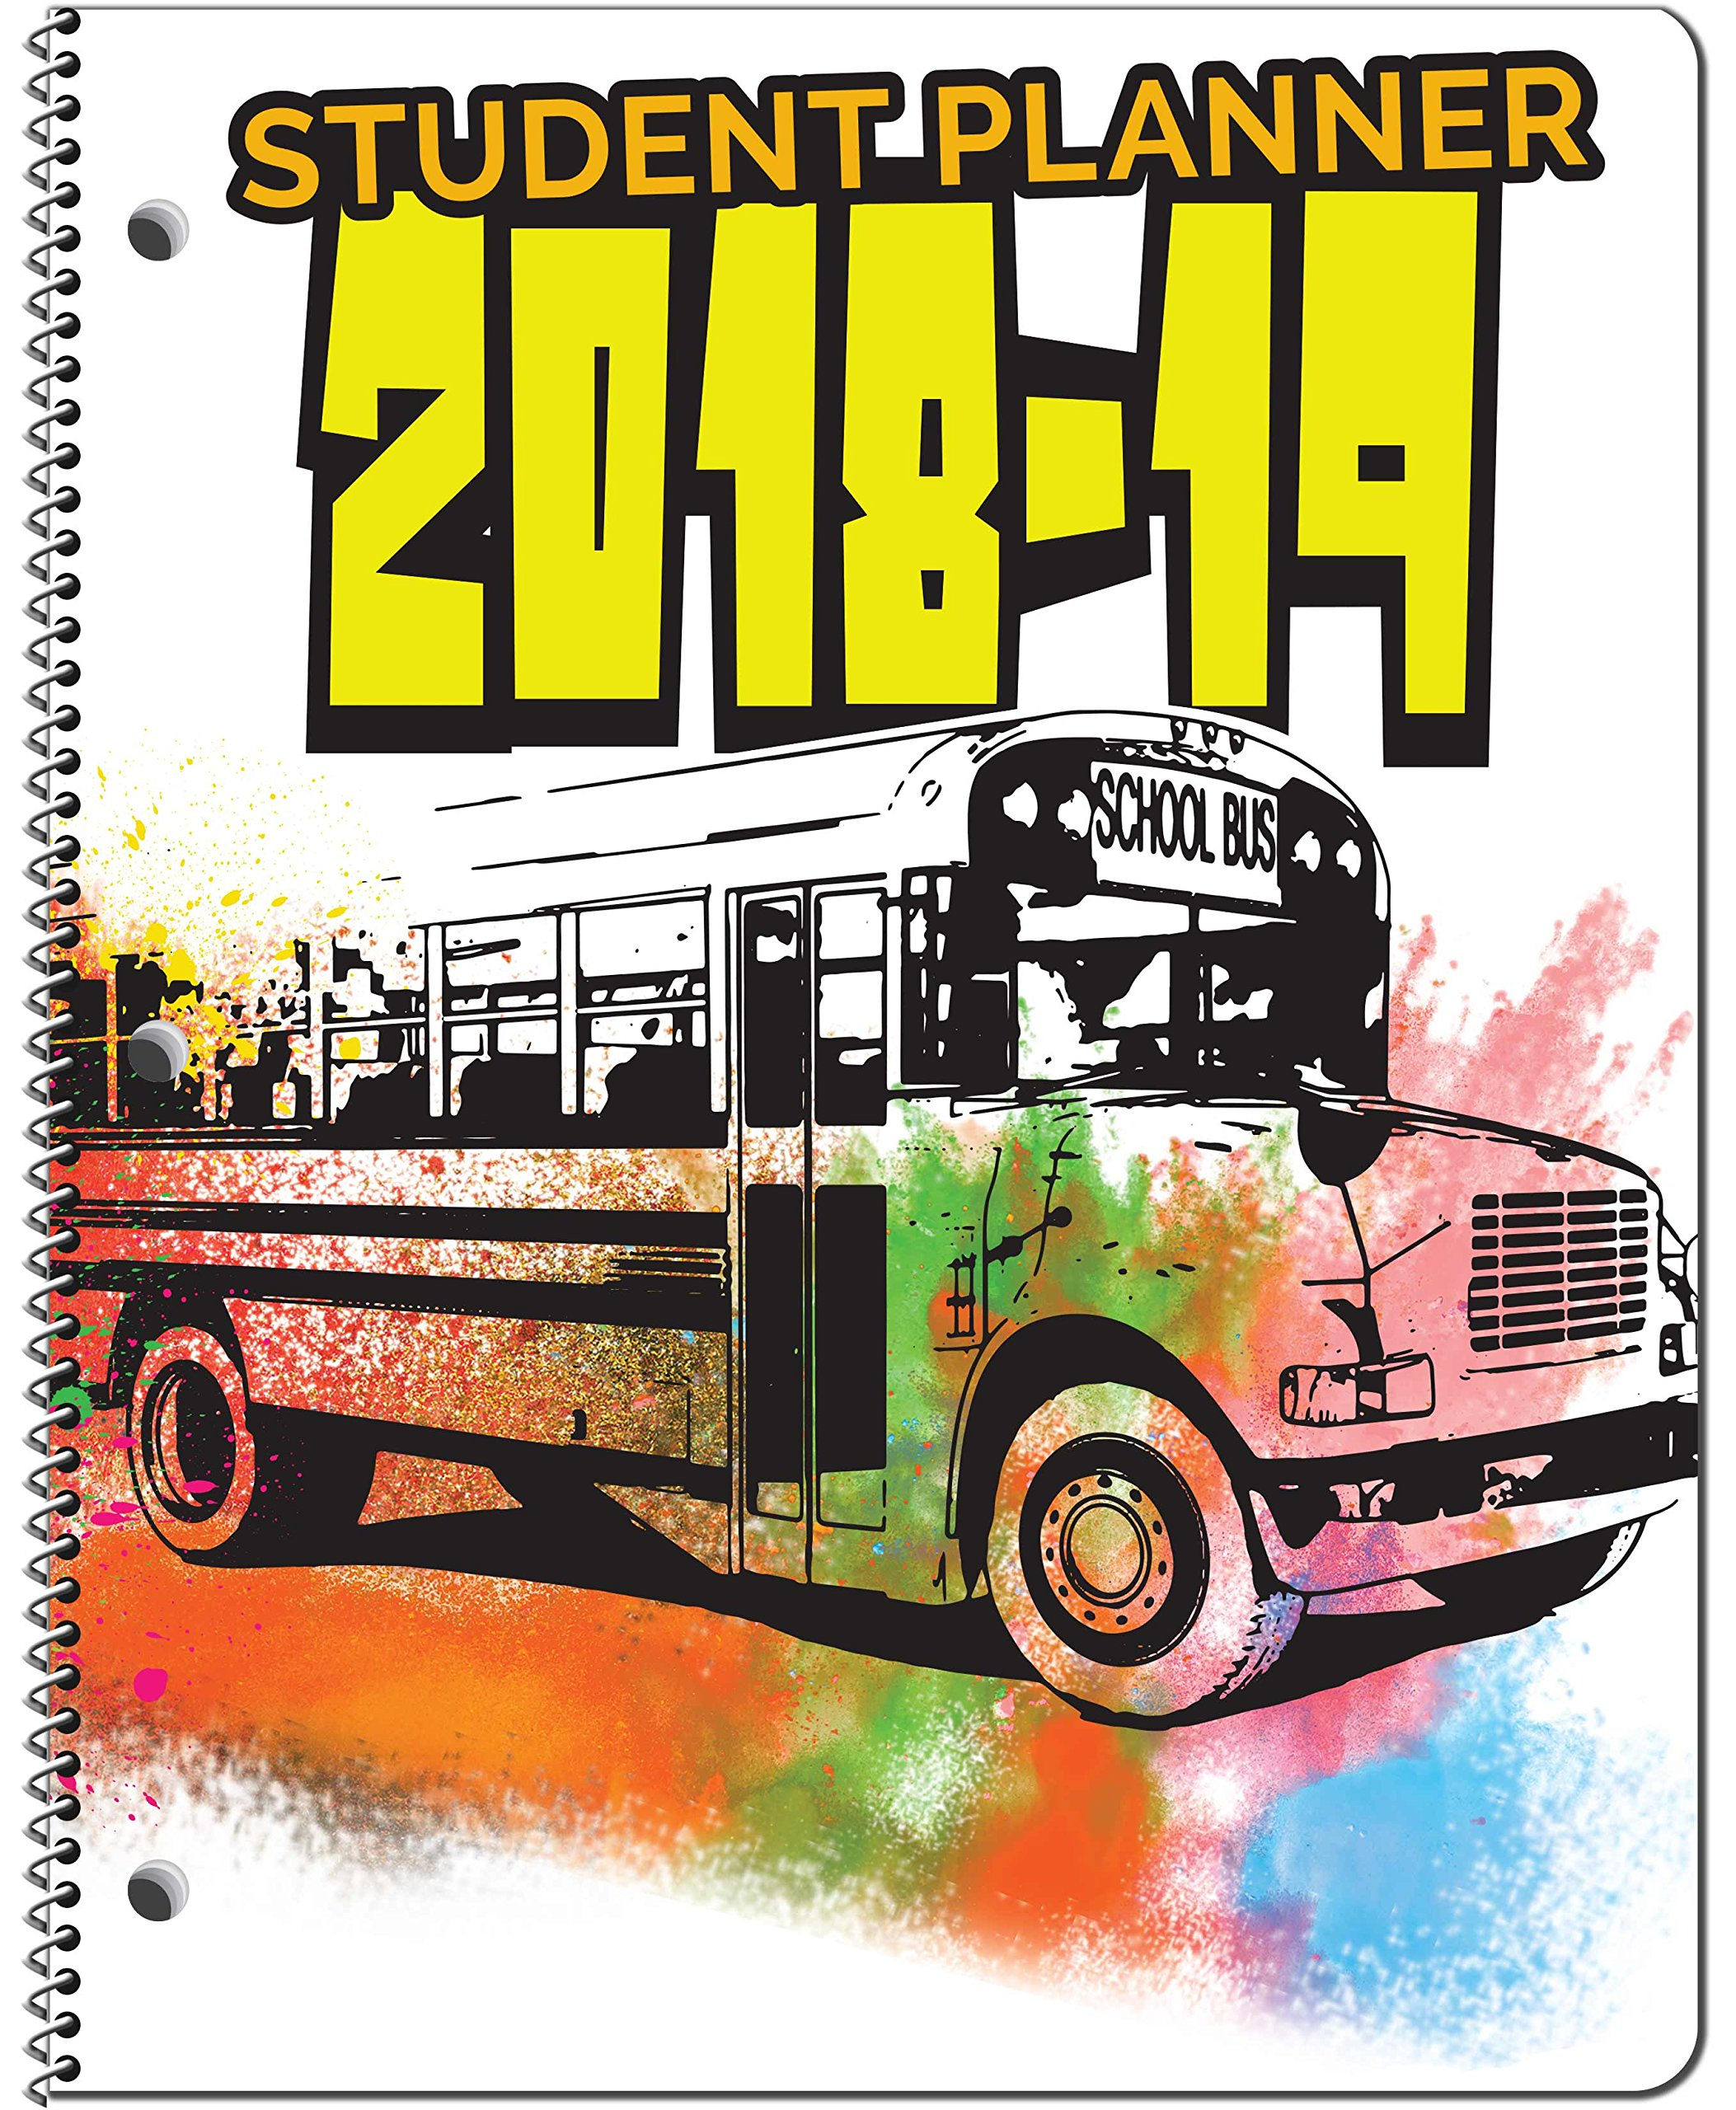 Dated Elementary School Student Planner for Academic Year 2018-2019- Jostens Planner Brand- Sold in packs of 15. (8-1/2'' x 11'').